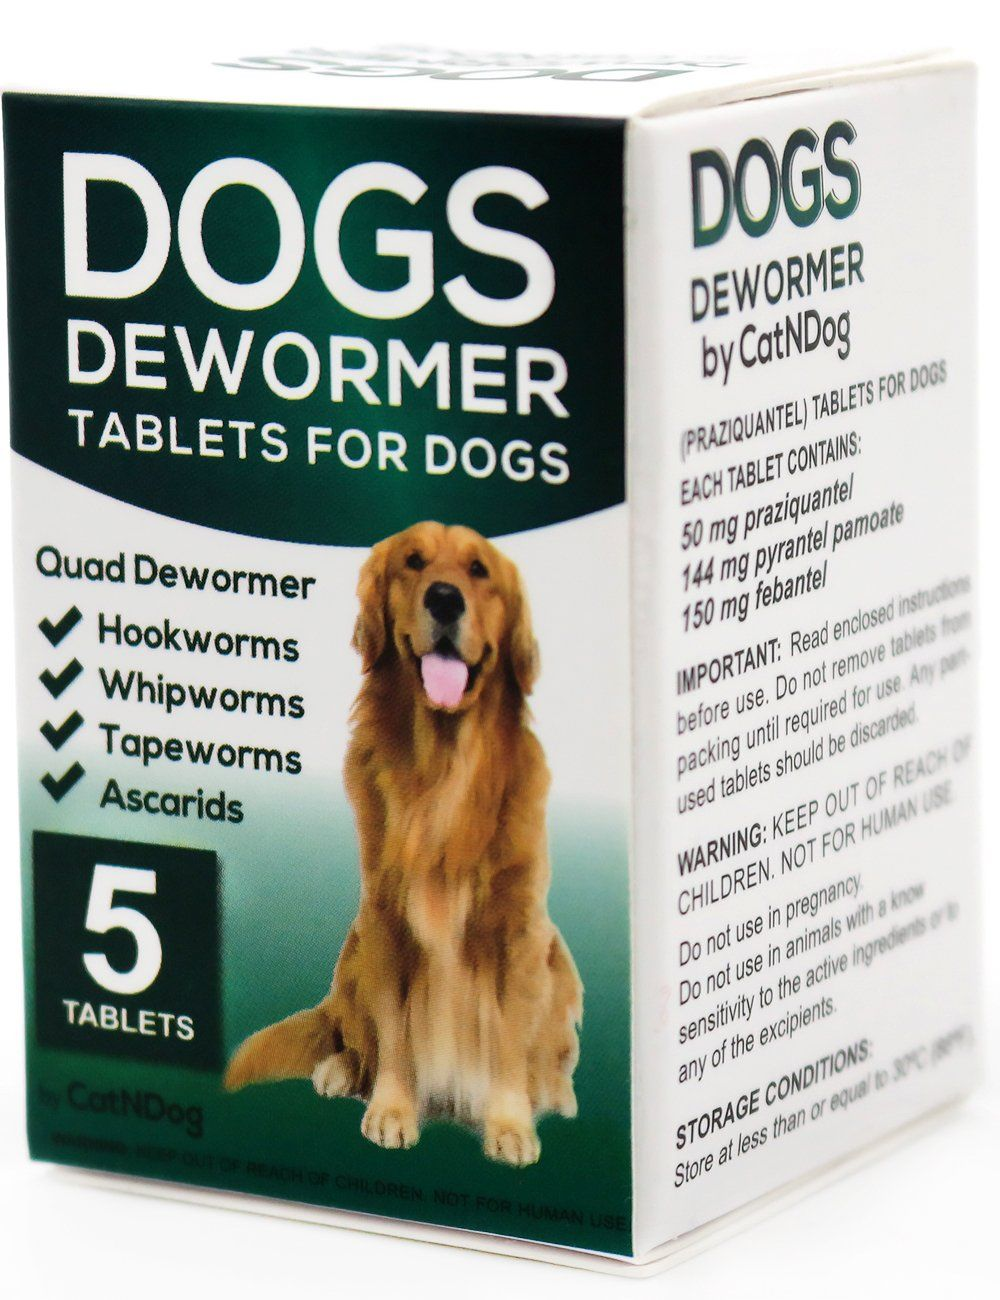 Catndog Quad Dewormer For Dogs Medicine Pills Wormer For Large